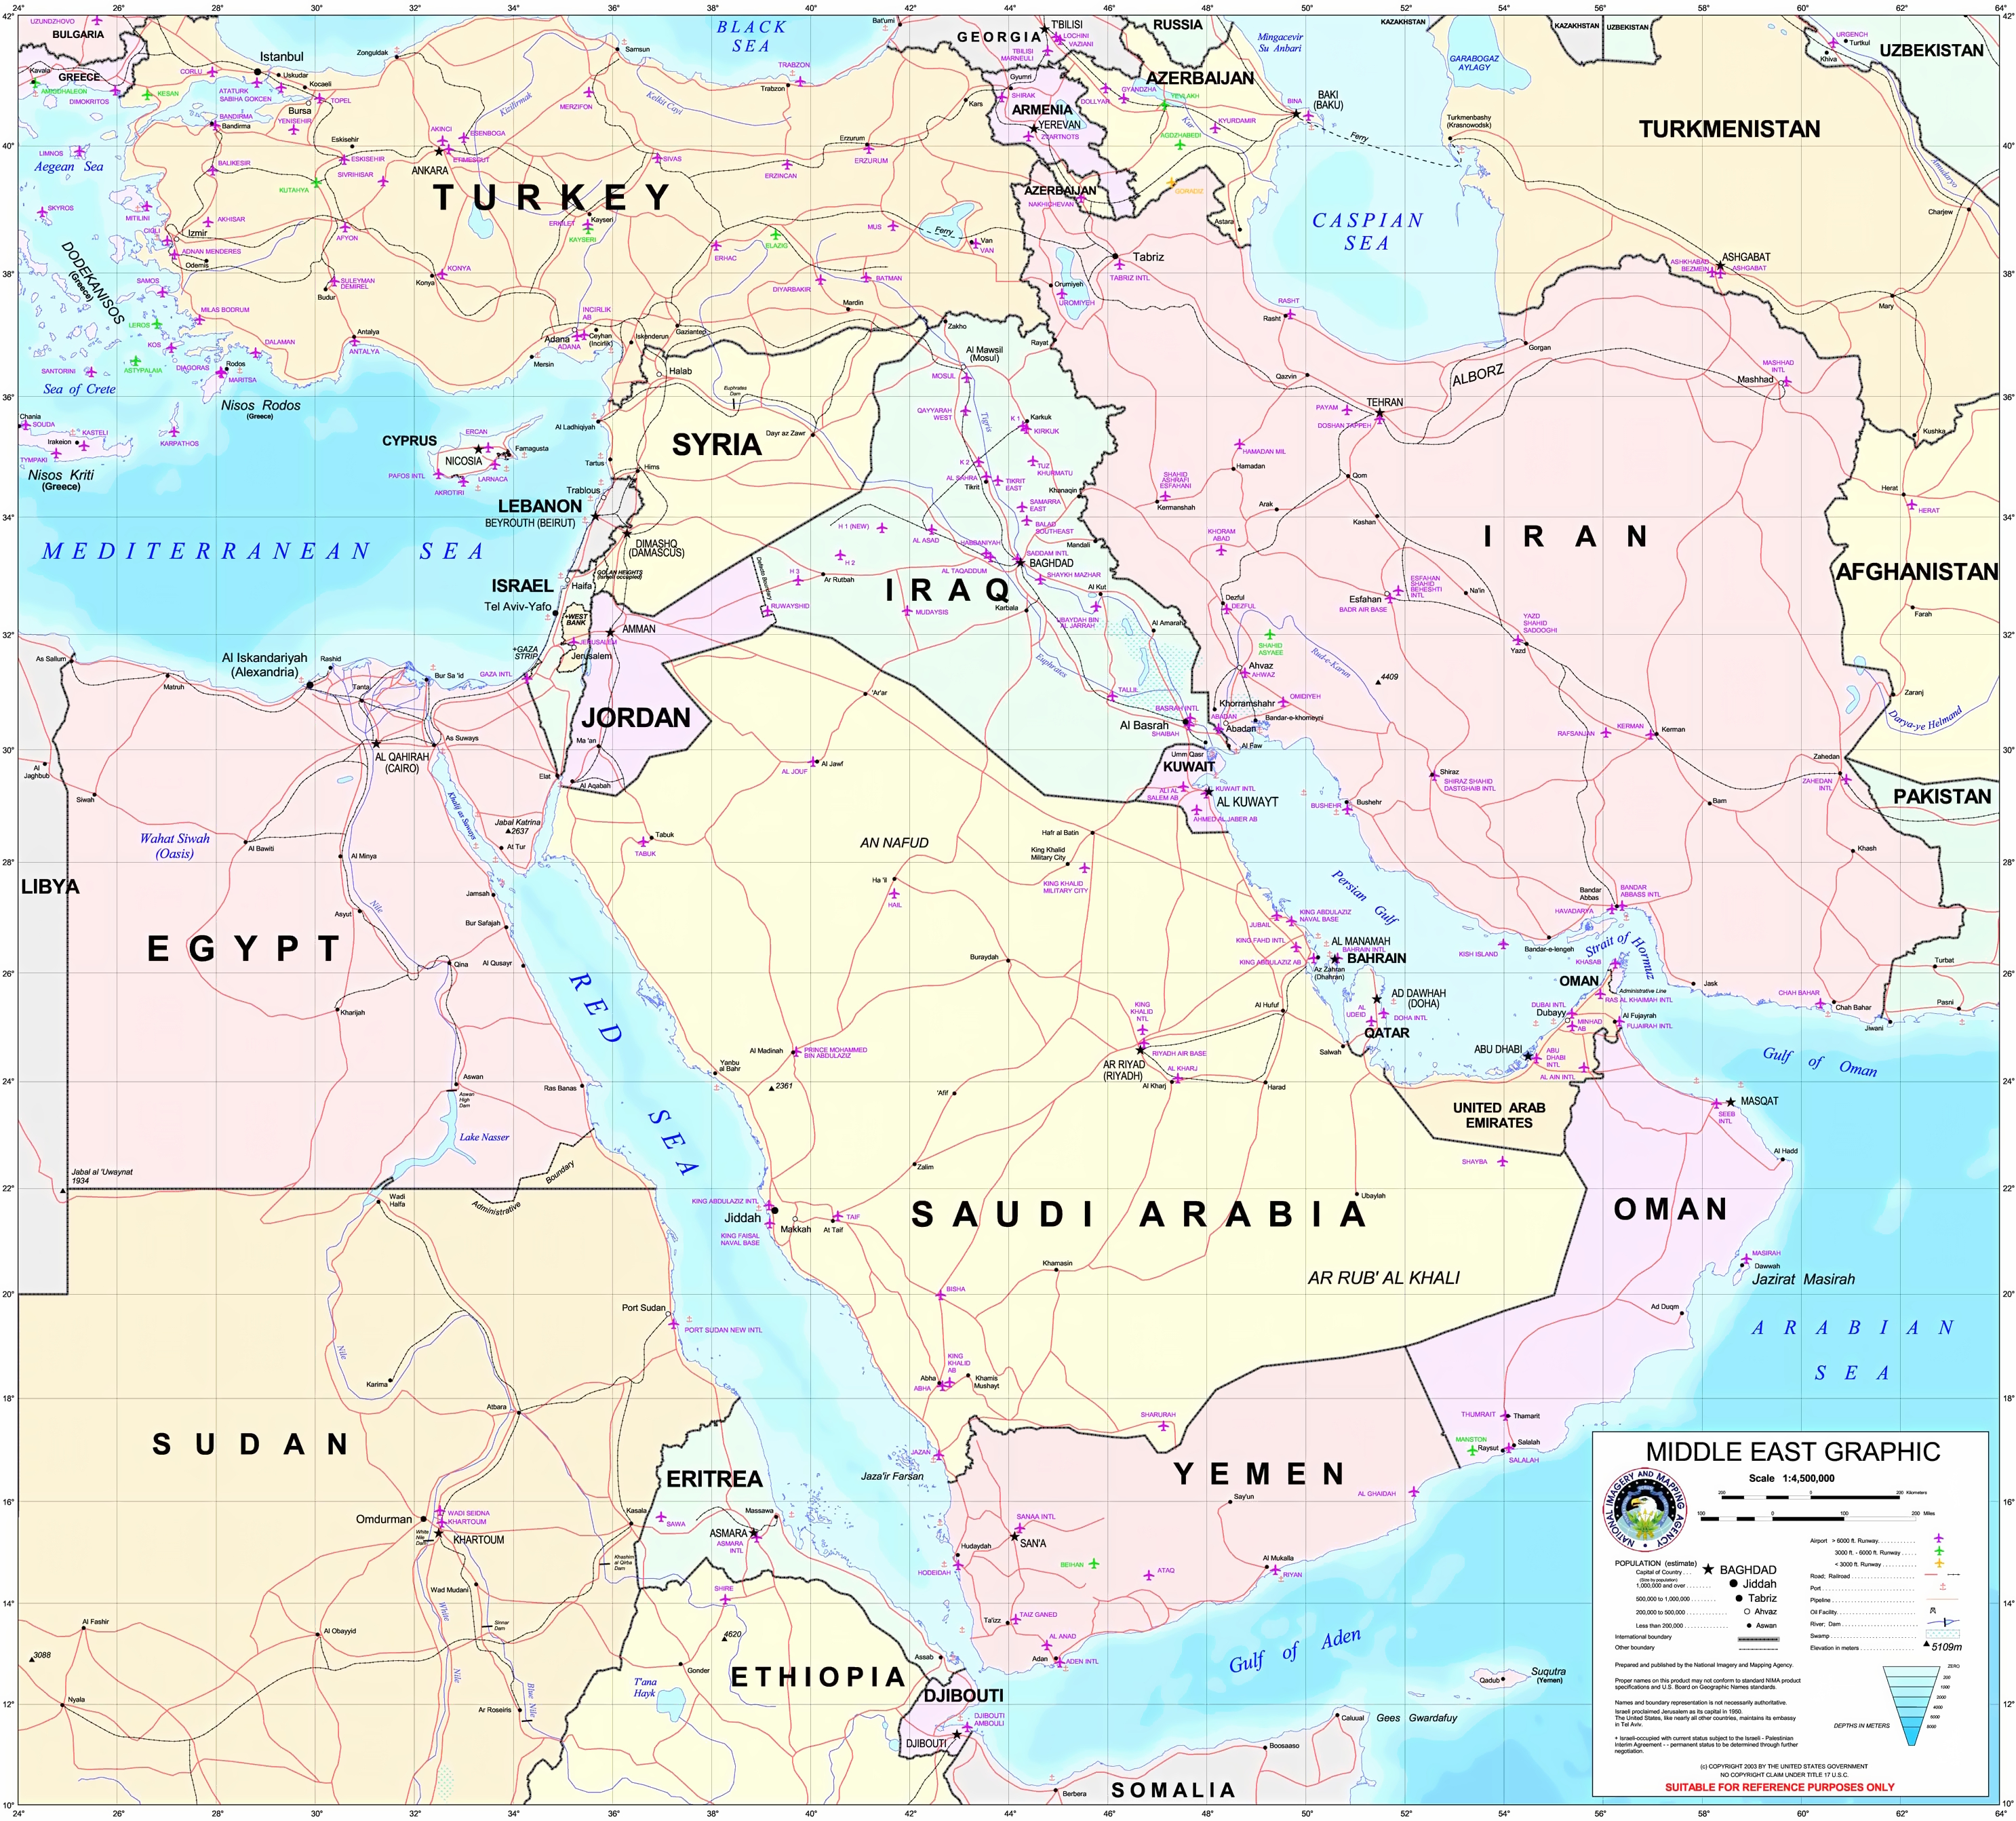 Islamic World | Common Core Social Studies Companion